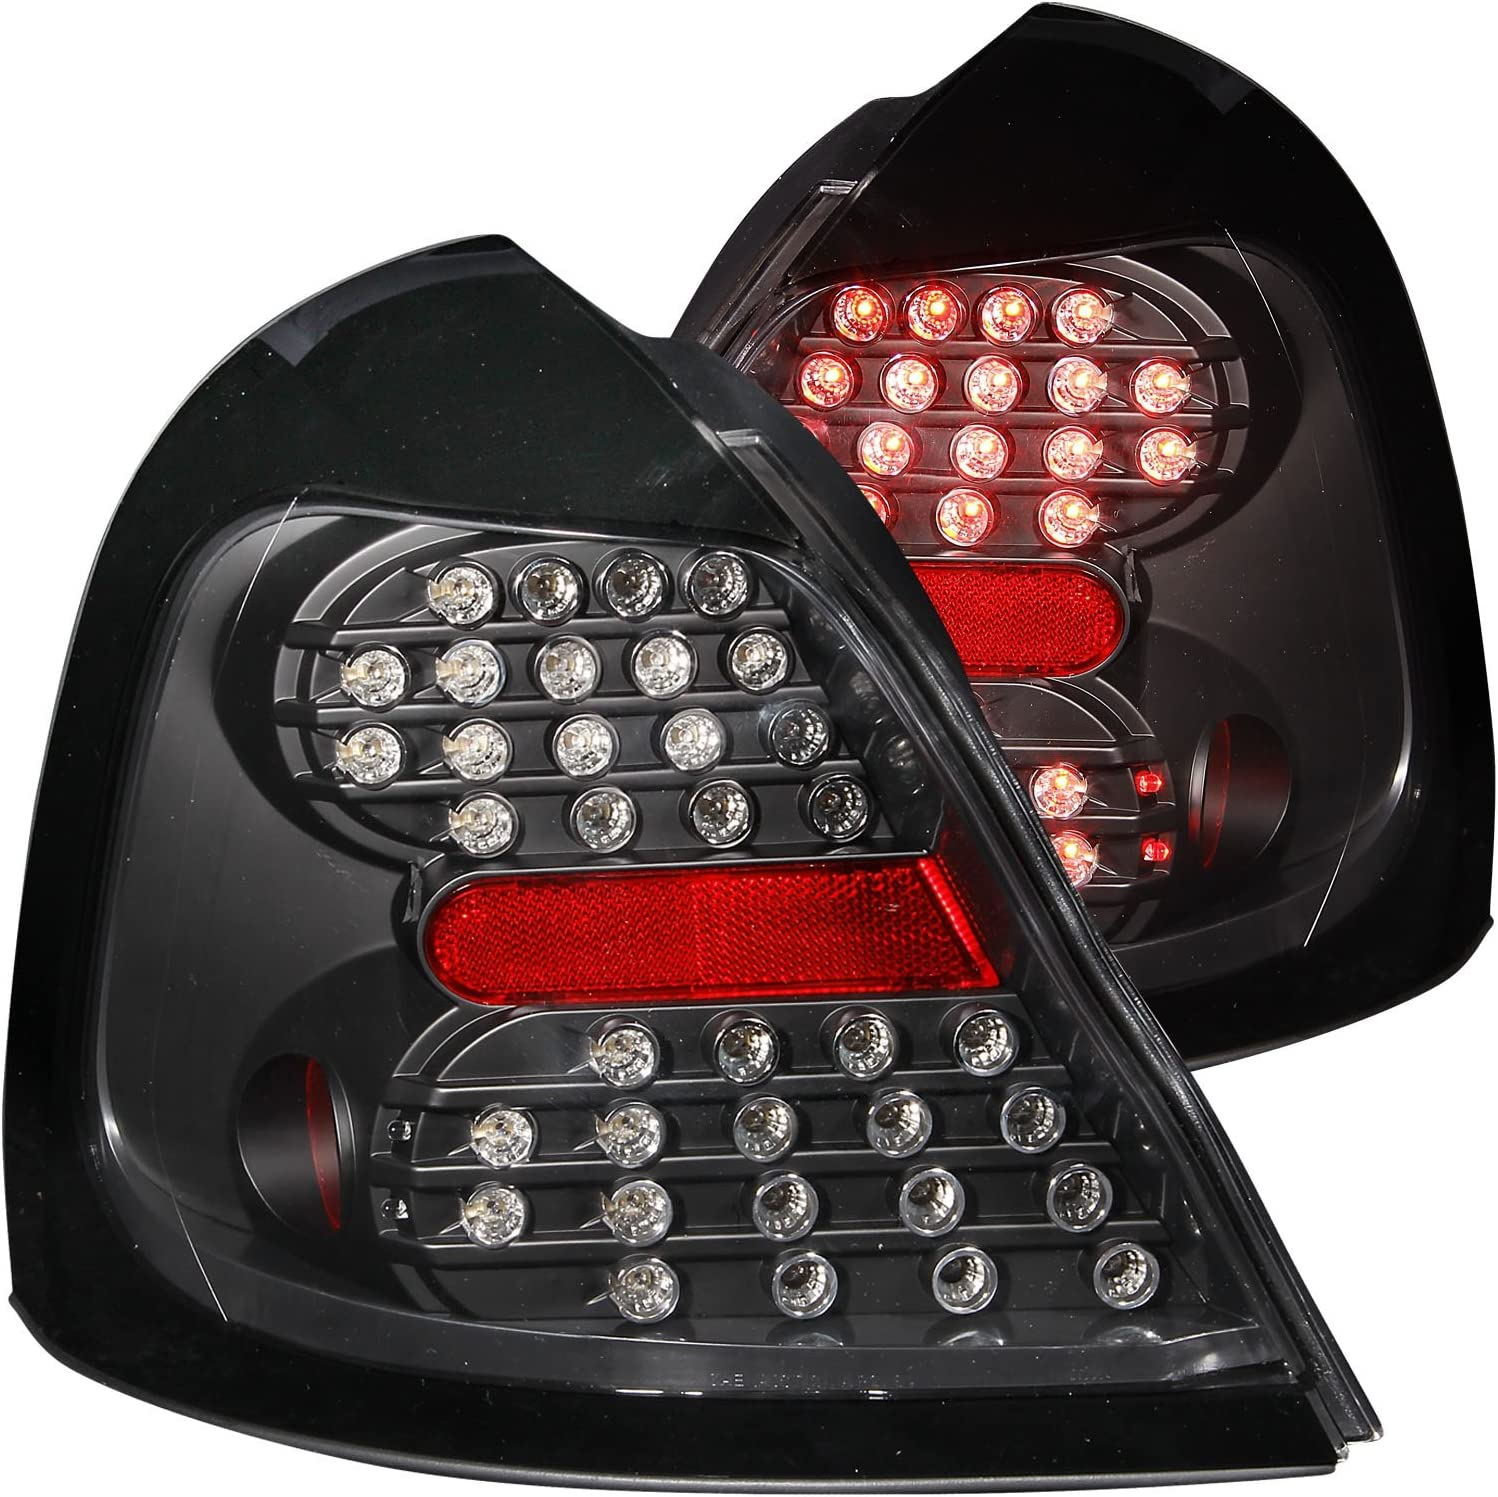 Anzo USA 211113 Mazda B2000 Black Tail Light Assembly Sold in Pairs